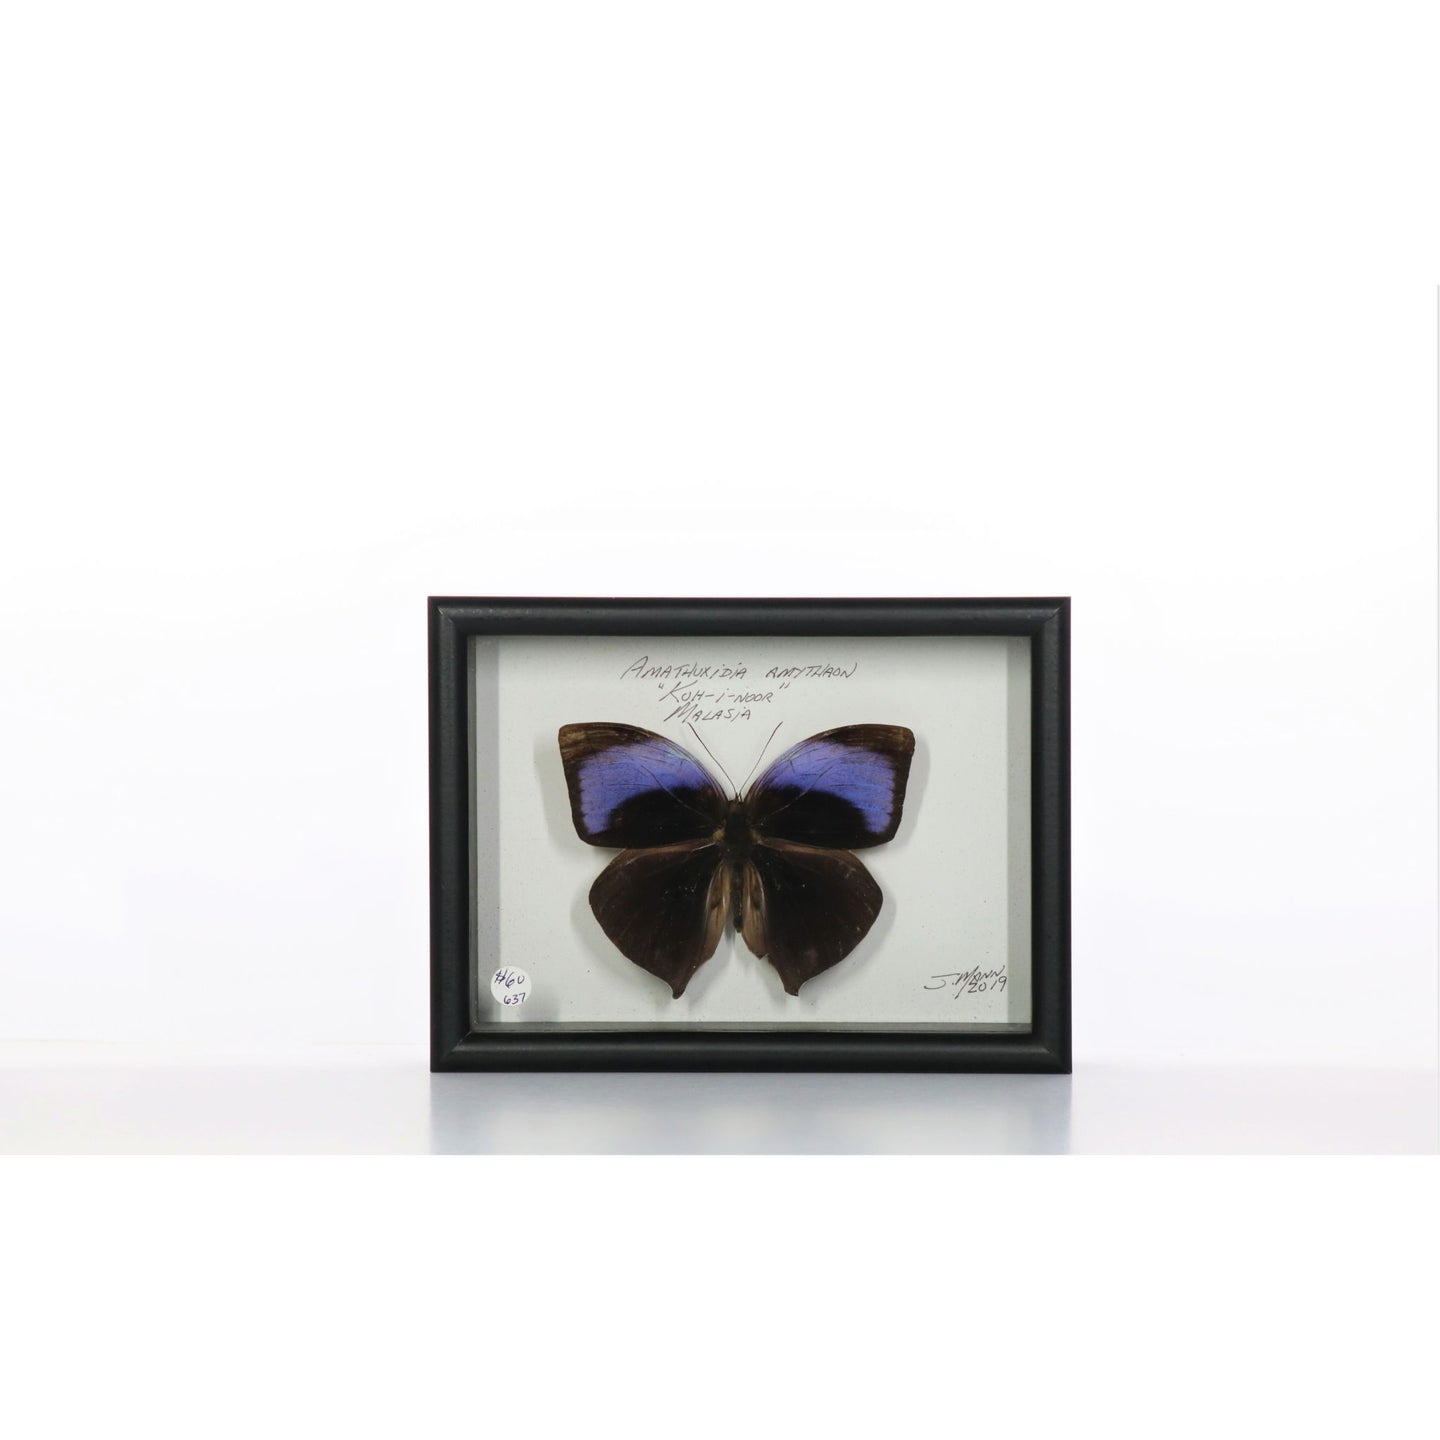 Koh-i-noor Male Butterfly 5x7 Black #637 Framed Art - Insecta Etcetera